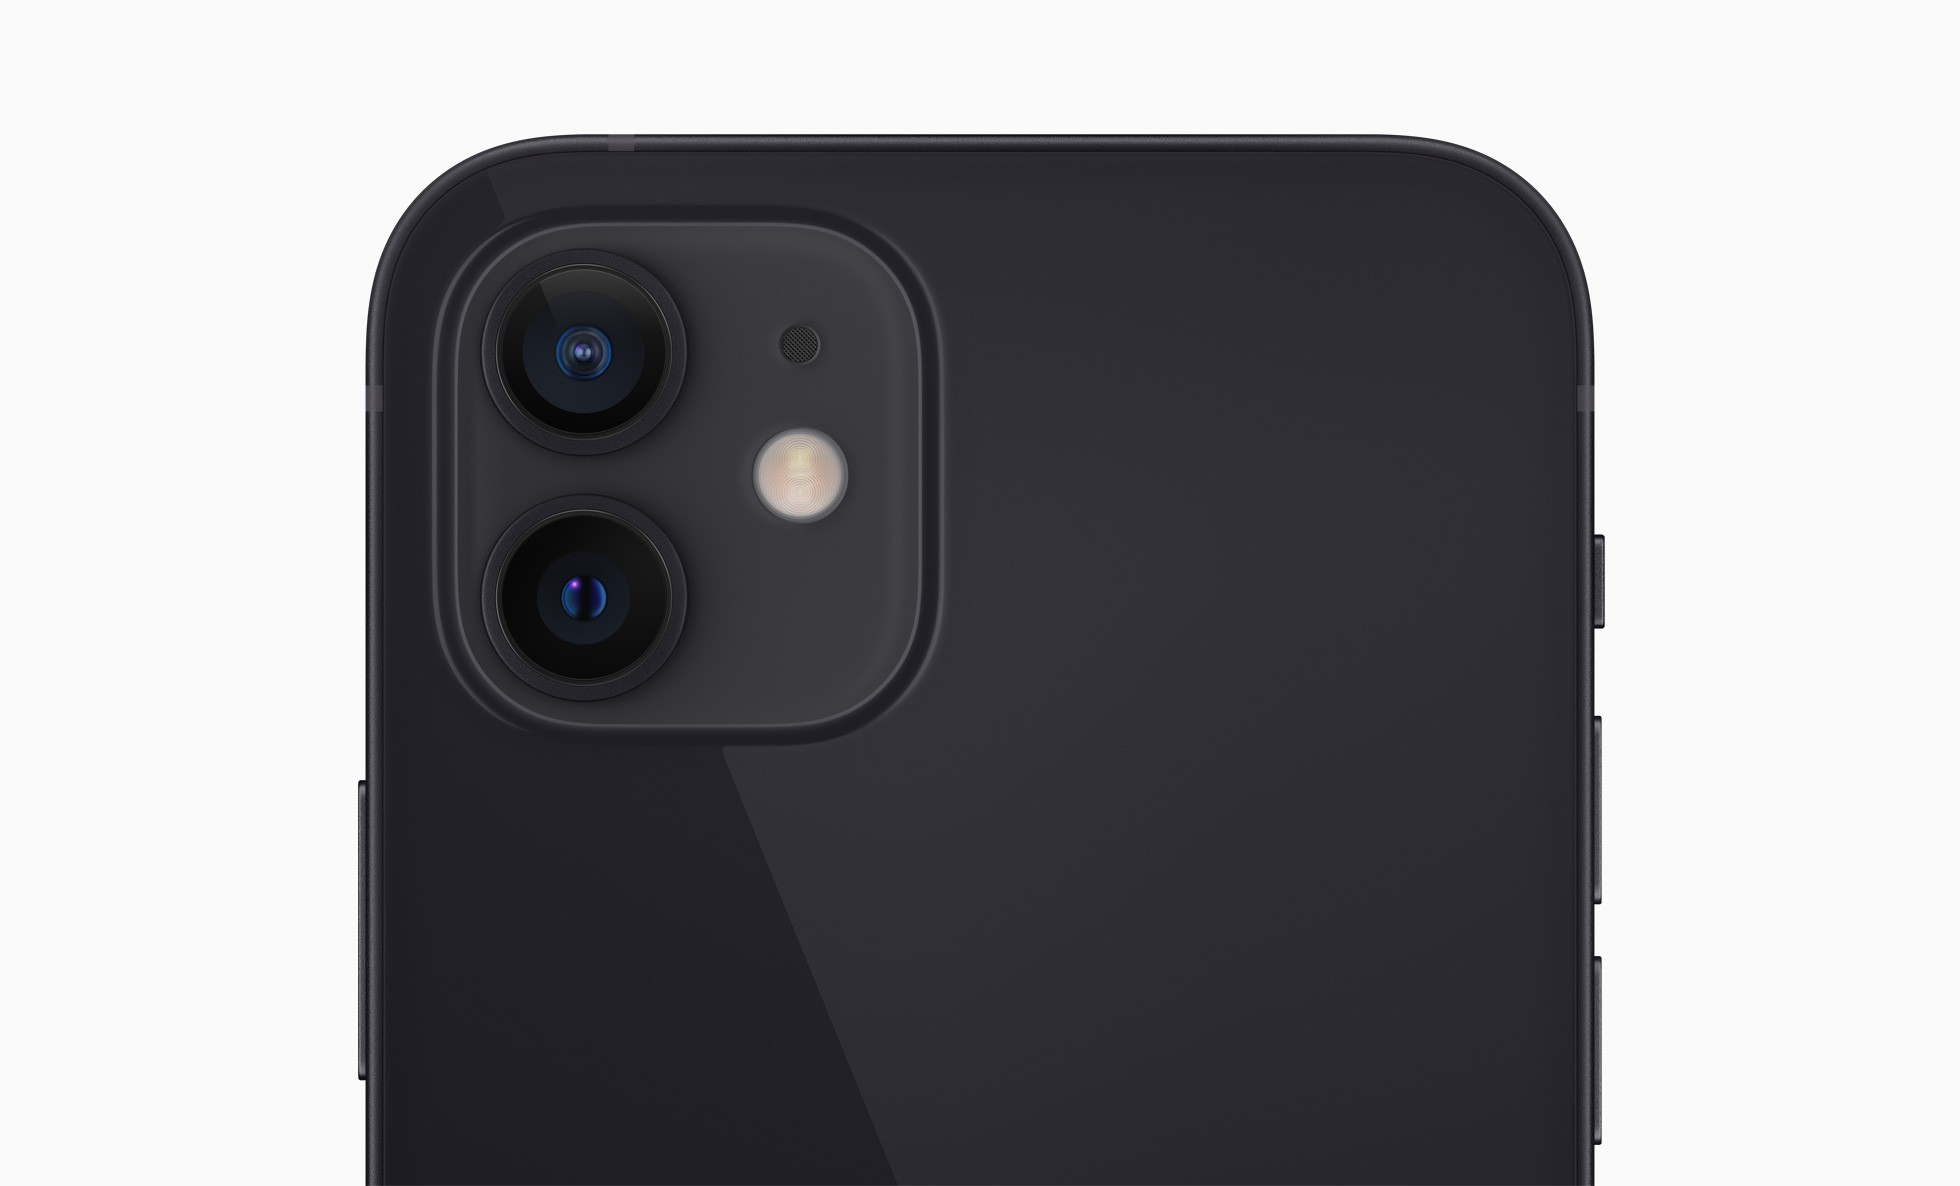 apple iphone 12 dual camera 10132020